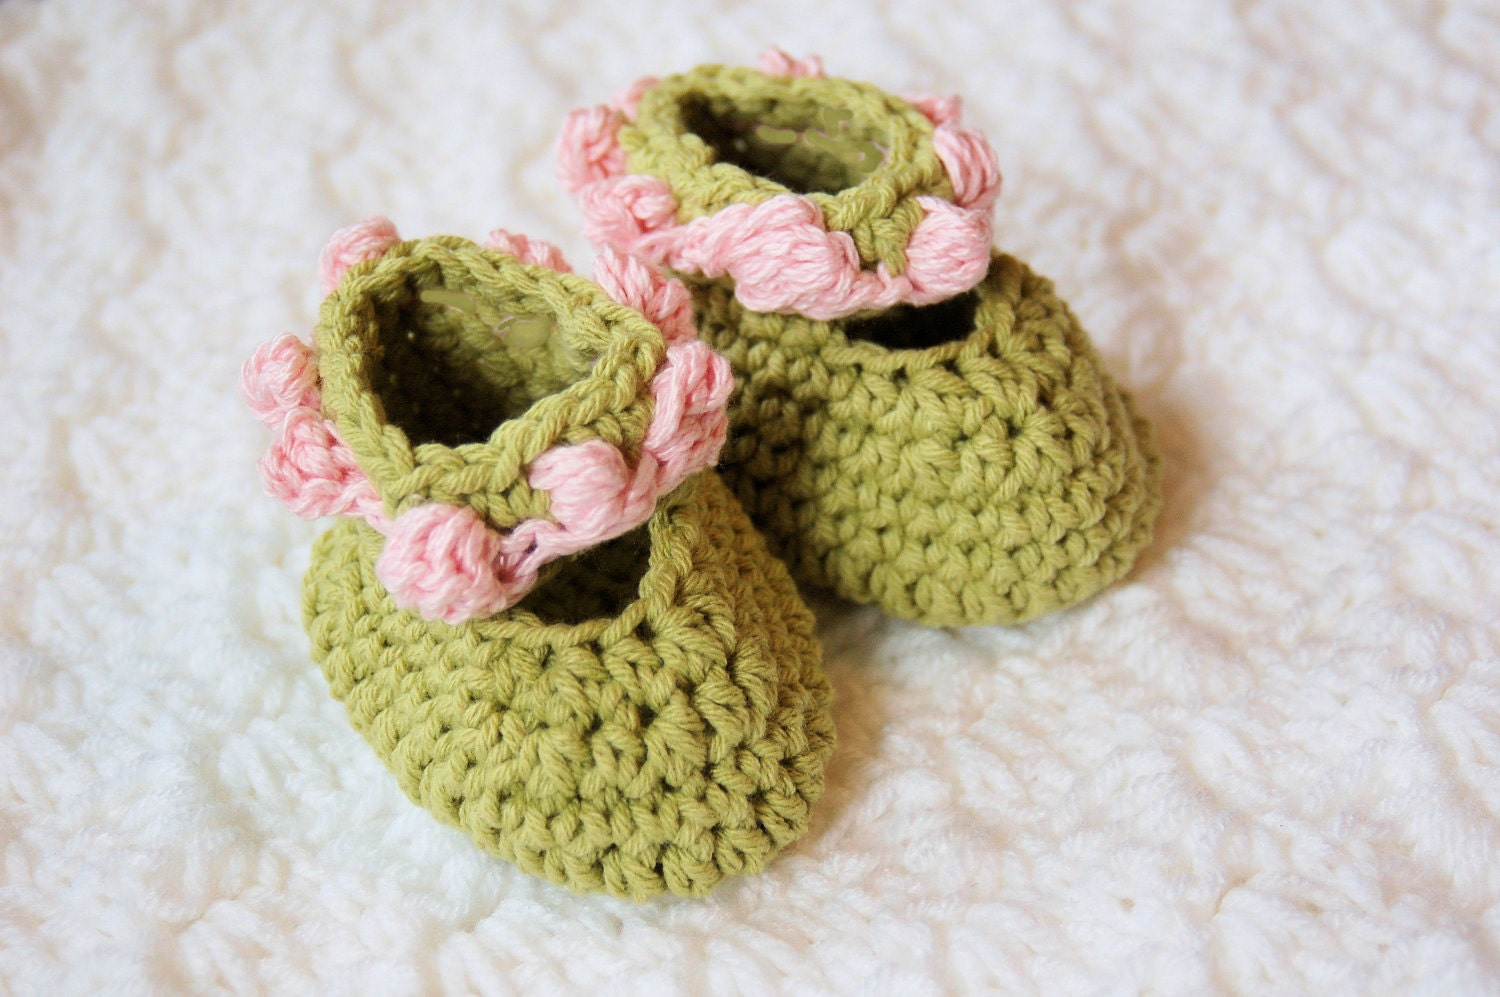 Earthy Girlie Hat and MaryJanes Crochet Pattern Buy Two Patterns Get 3RD. Free